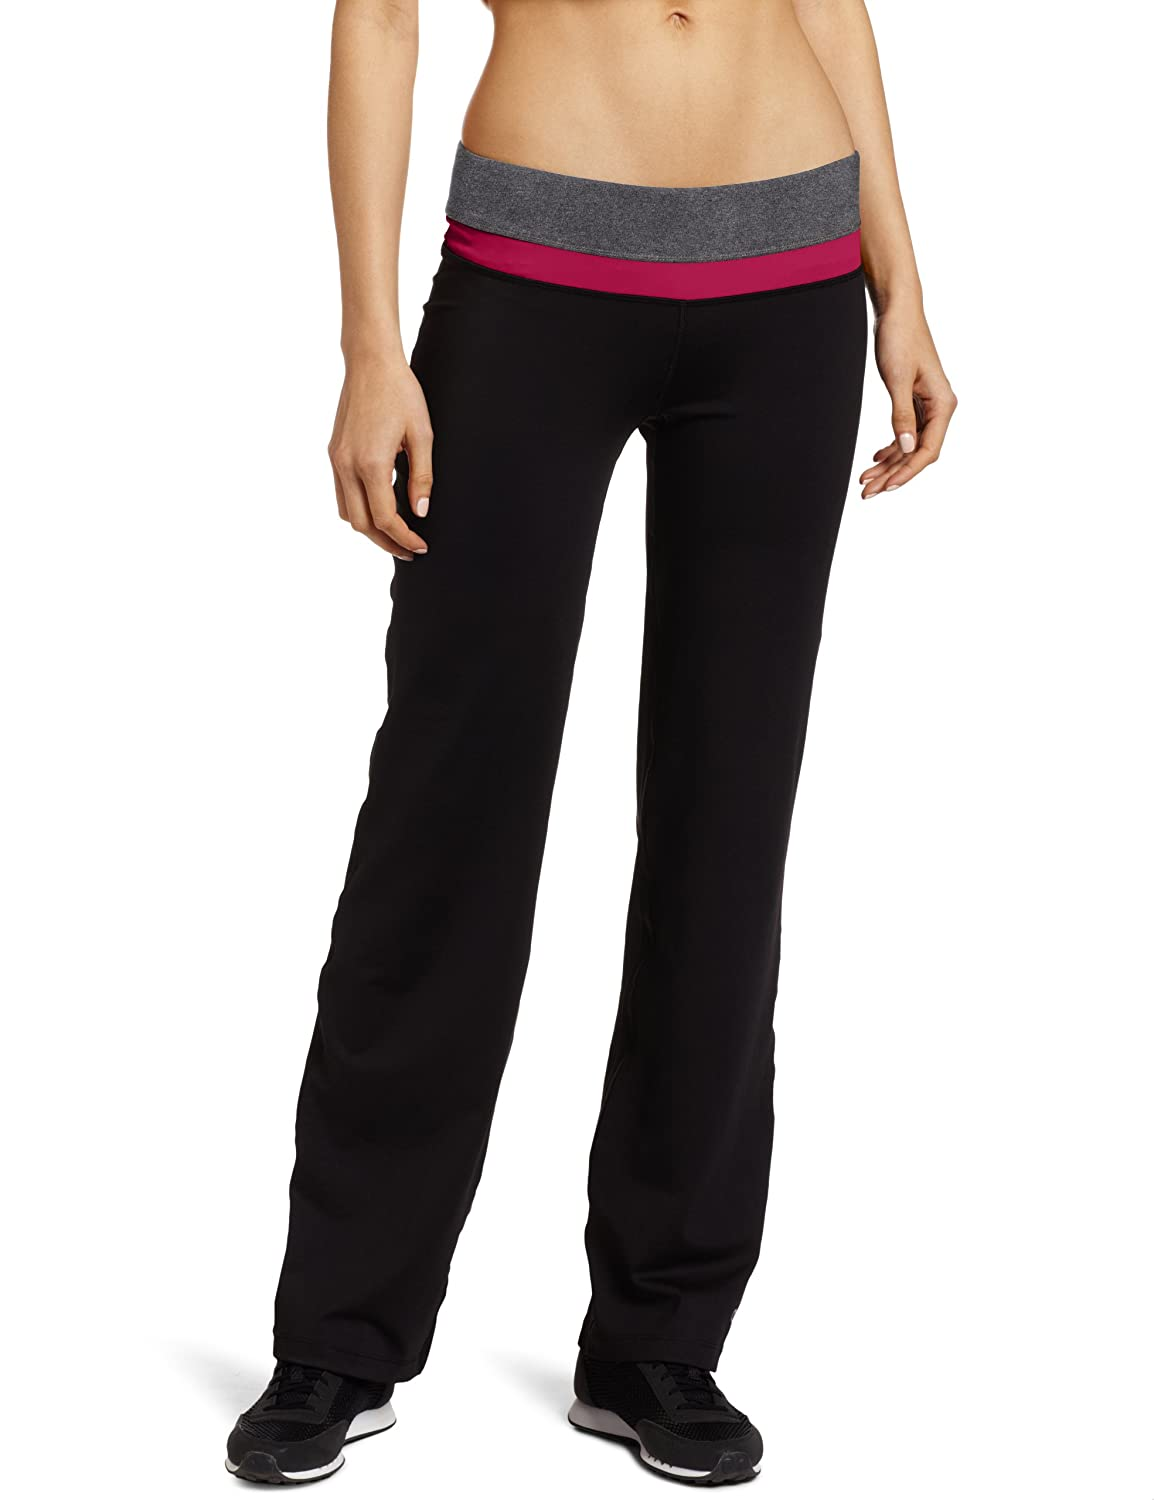 Champion Women's Absolute Workout Pant 8250